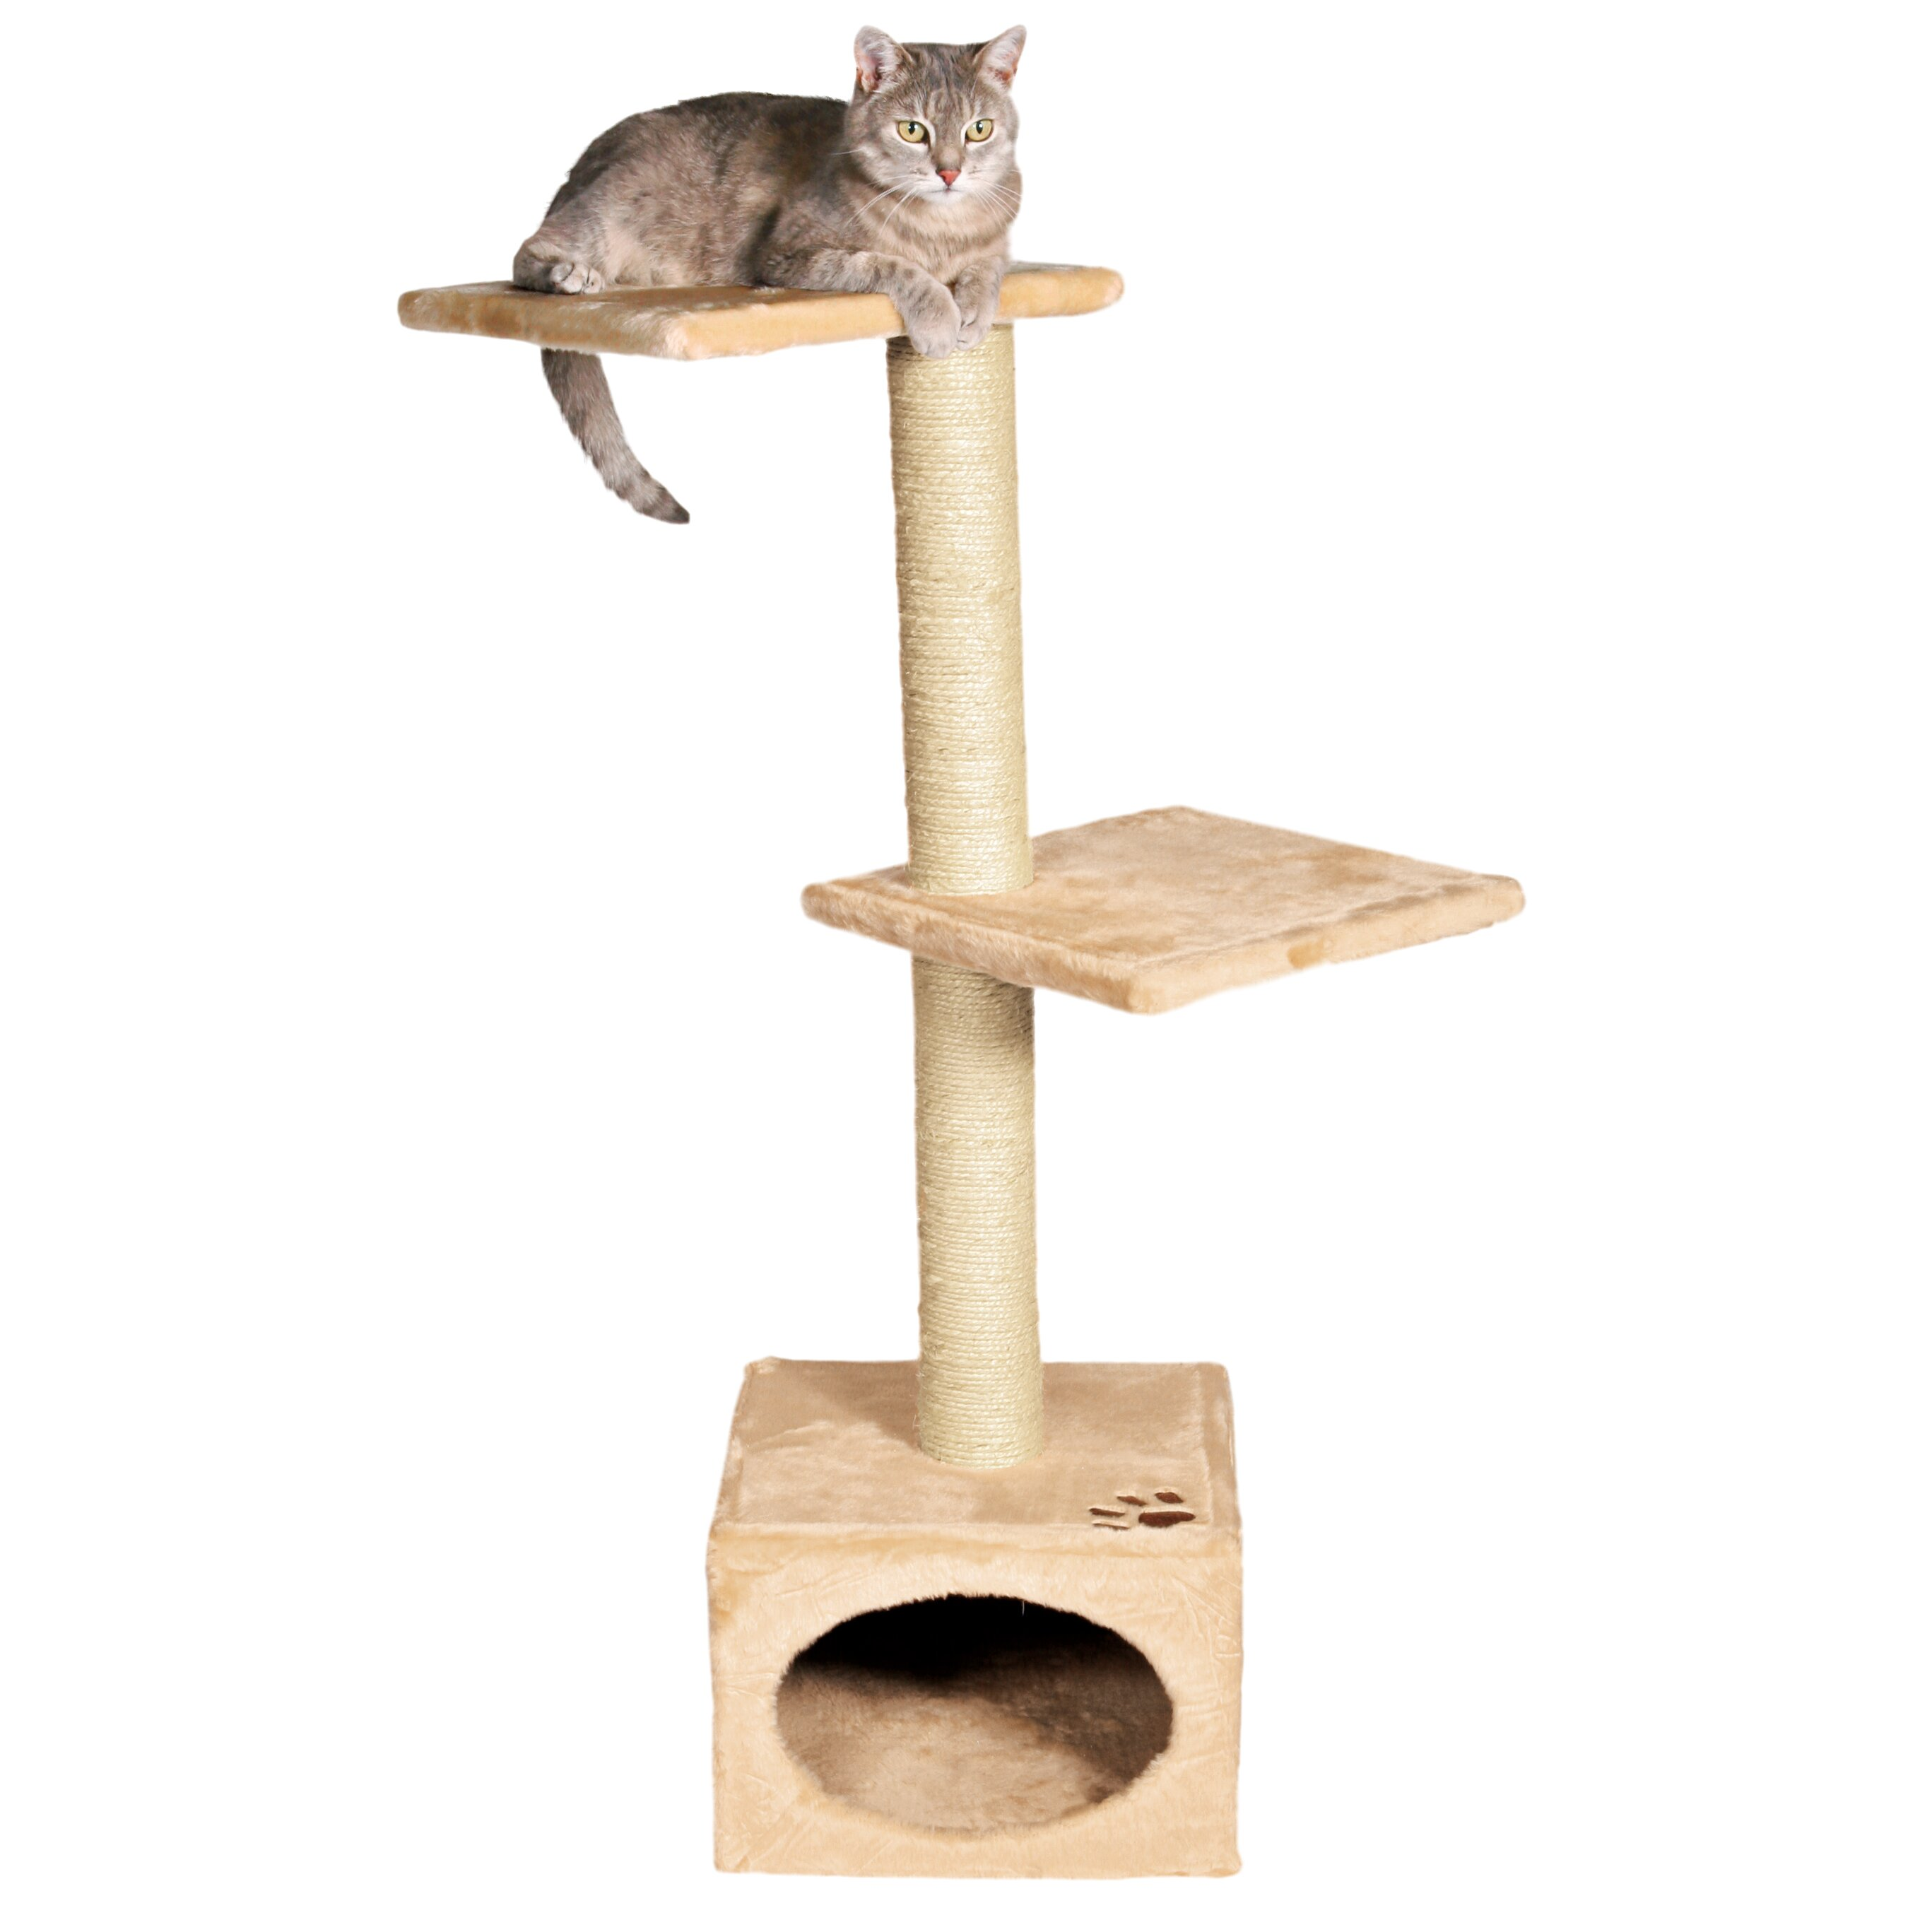 Trixie badalona 43 cat tree reviews wayfair for Pictures of cat trees